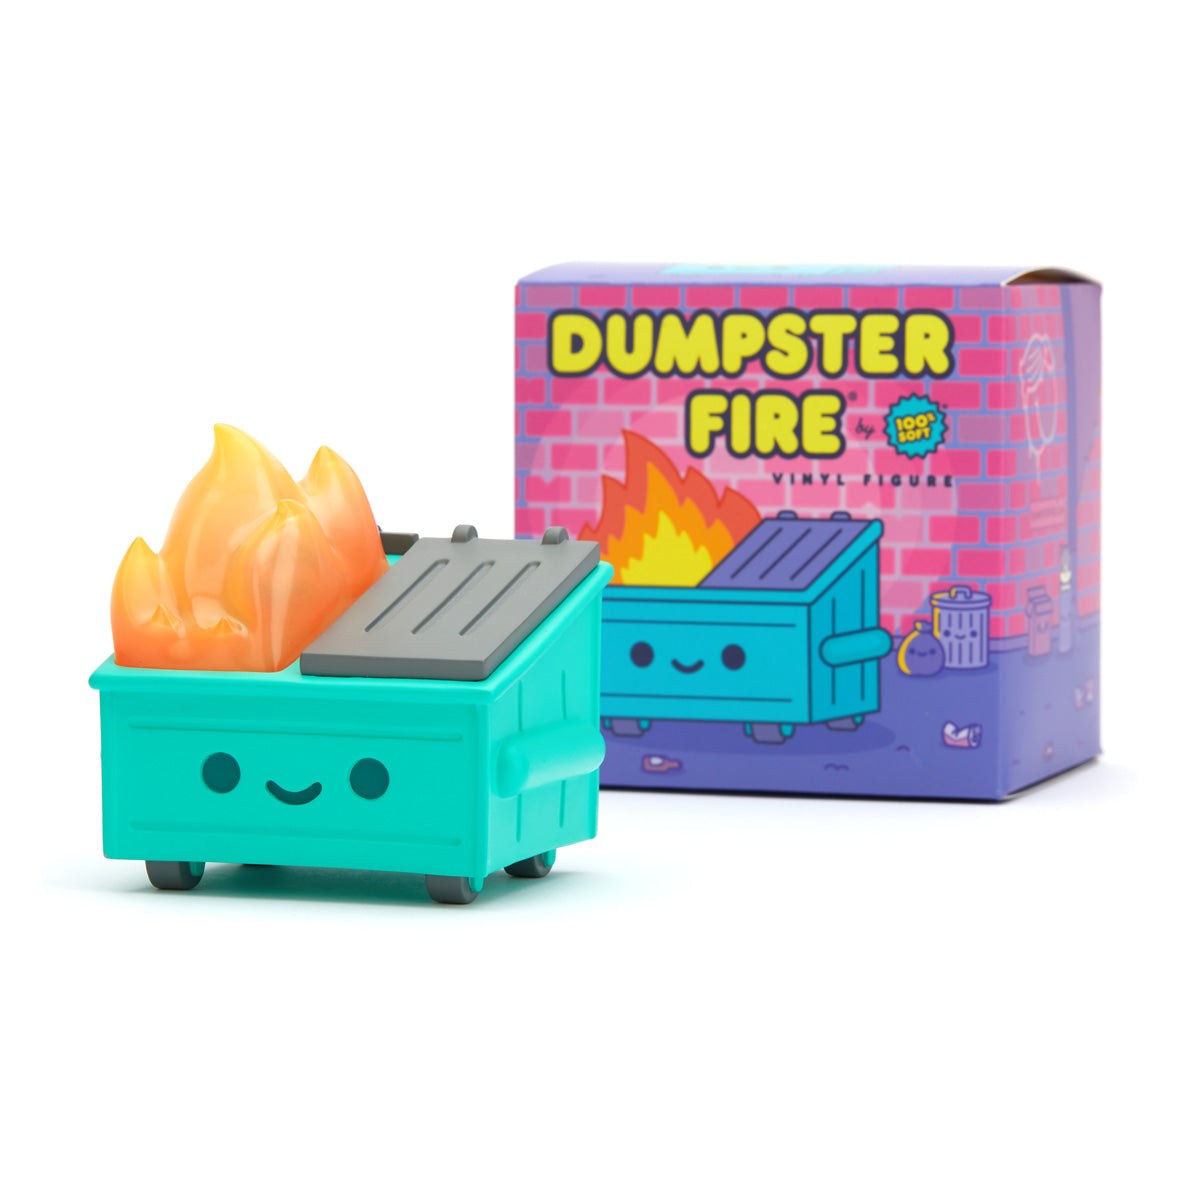 Dumpster Fire Vinyl Figure - SOLD OUT